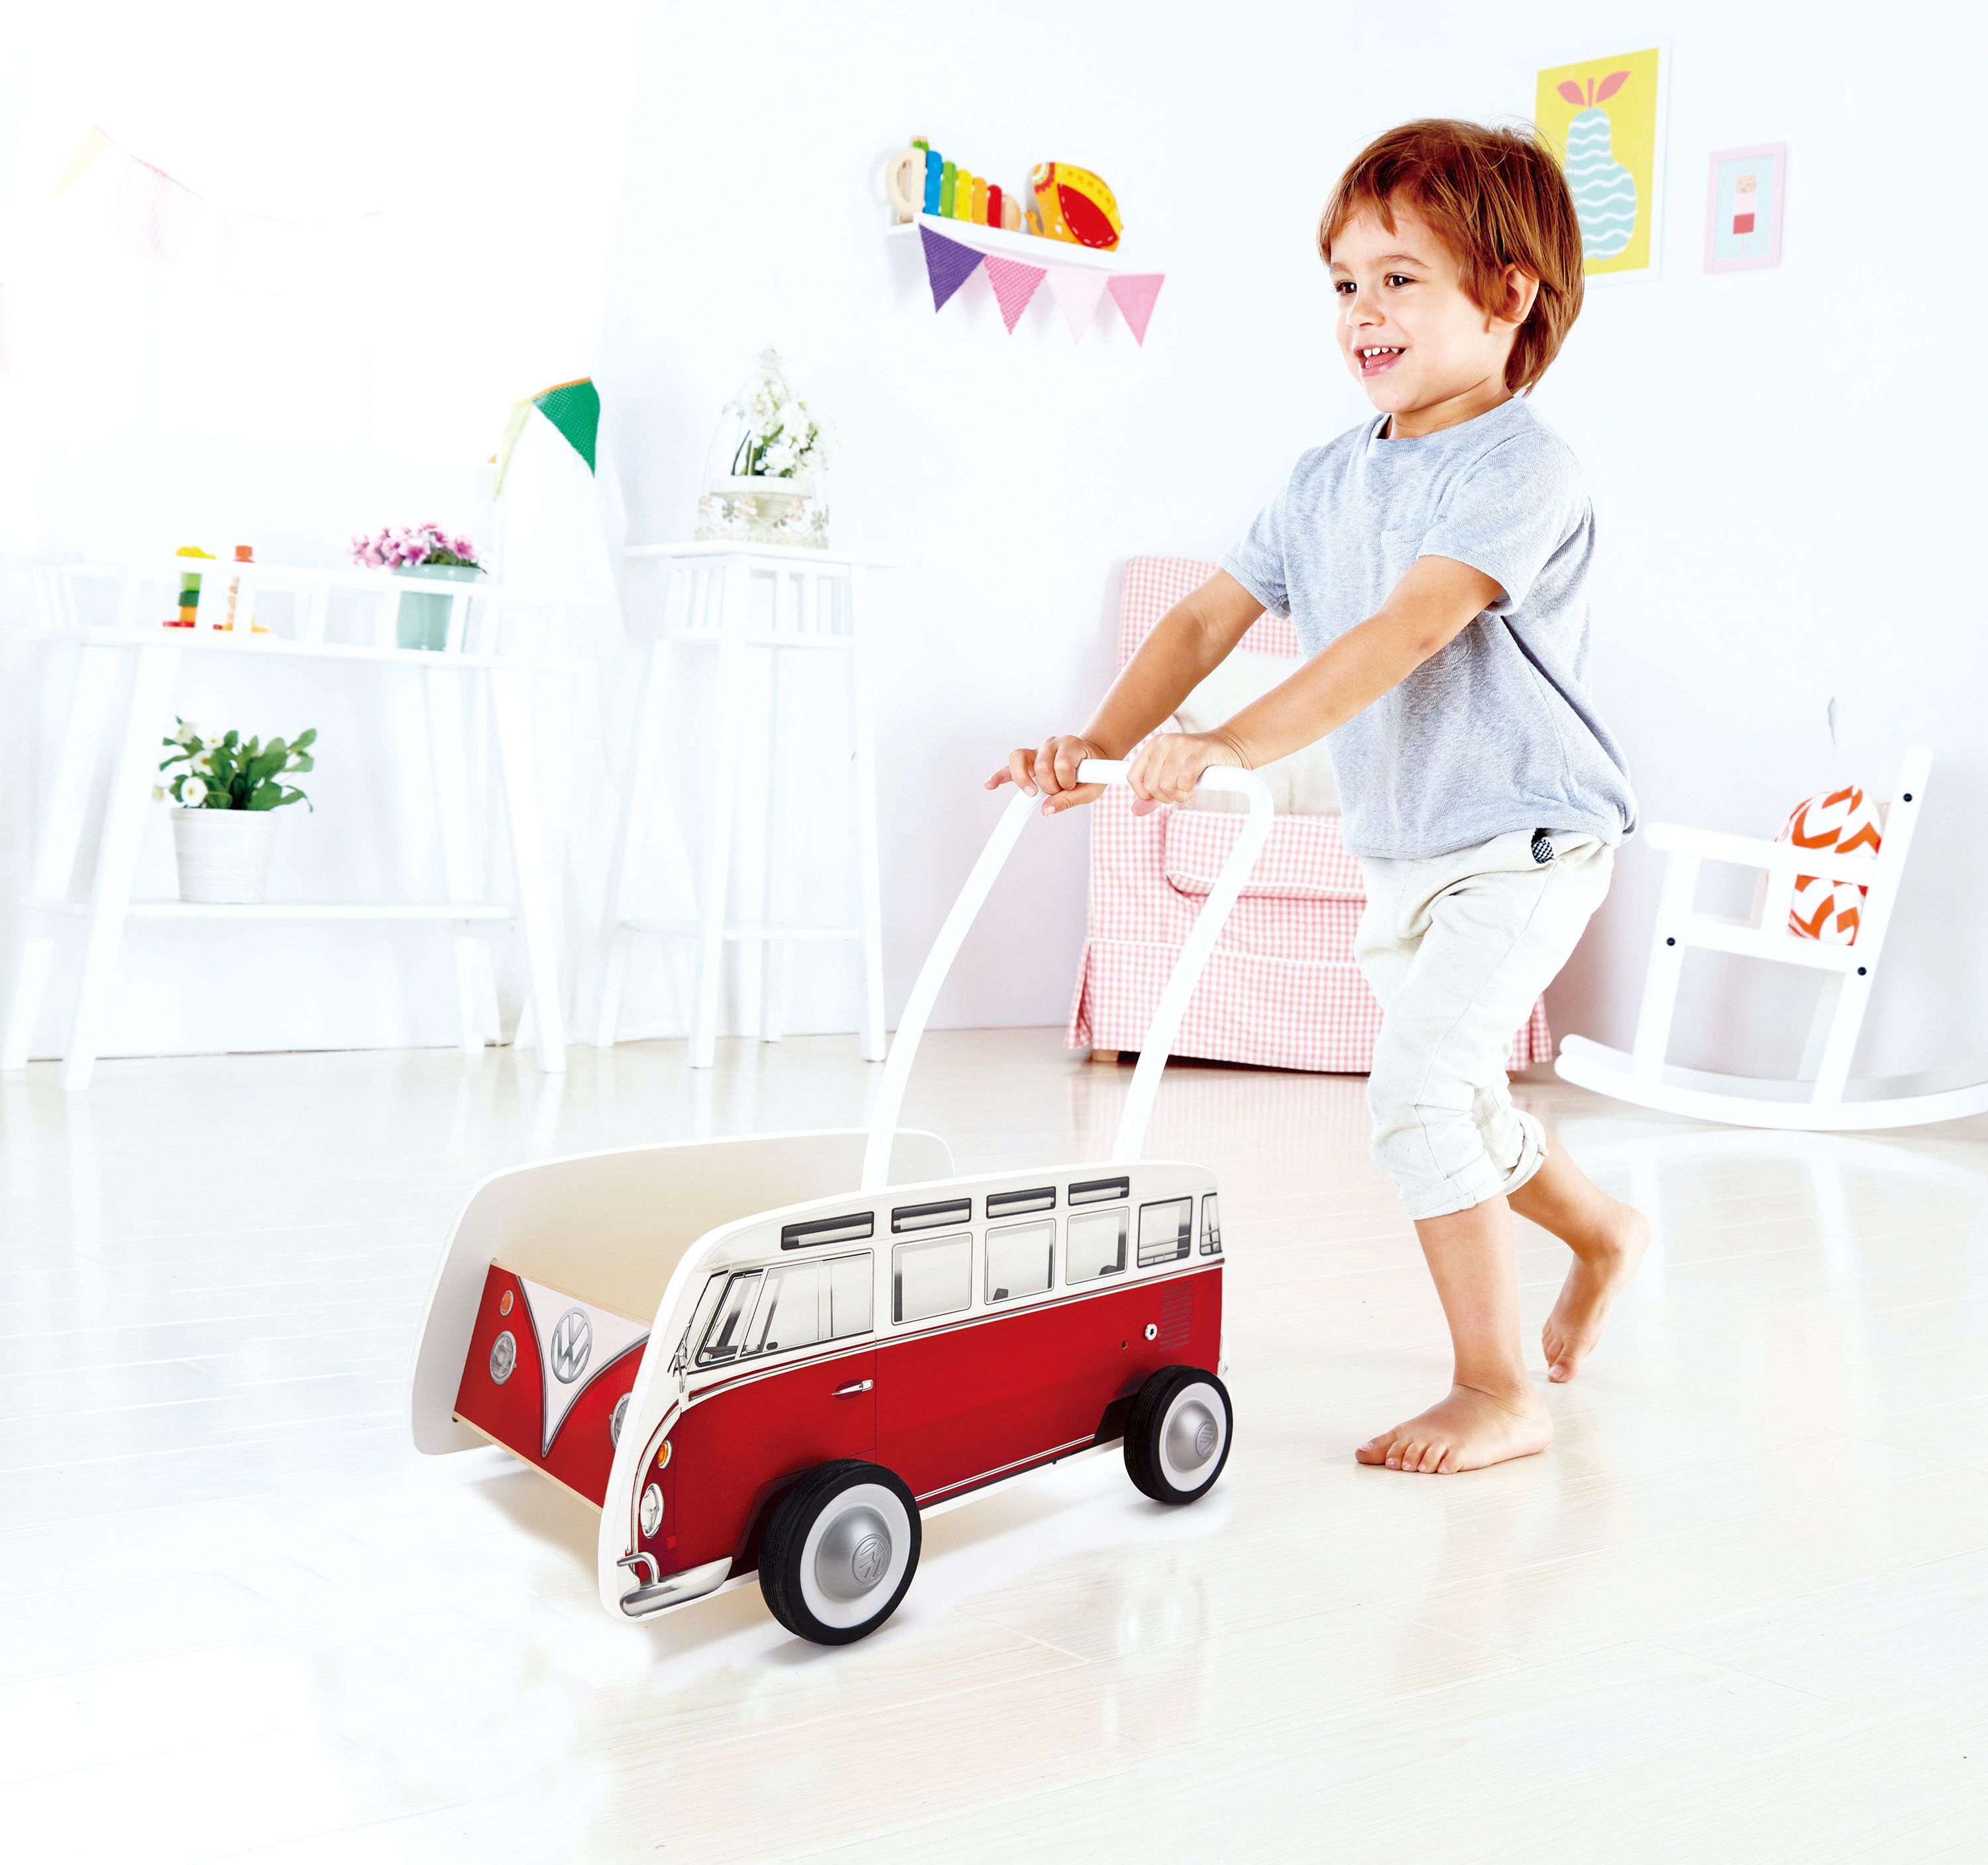 camper volkswagen whether classical red for classic vw toddlers babies this walk or product van classicalbuswalker bus style their walker learning is perfect to simply brave pushing and adventurous